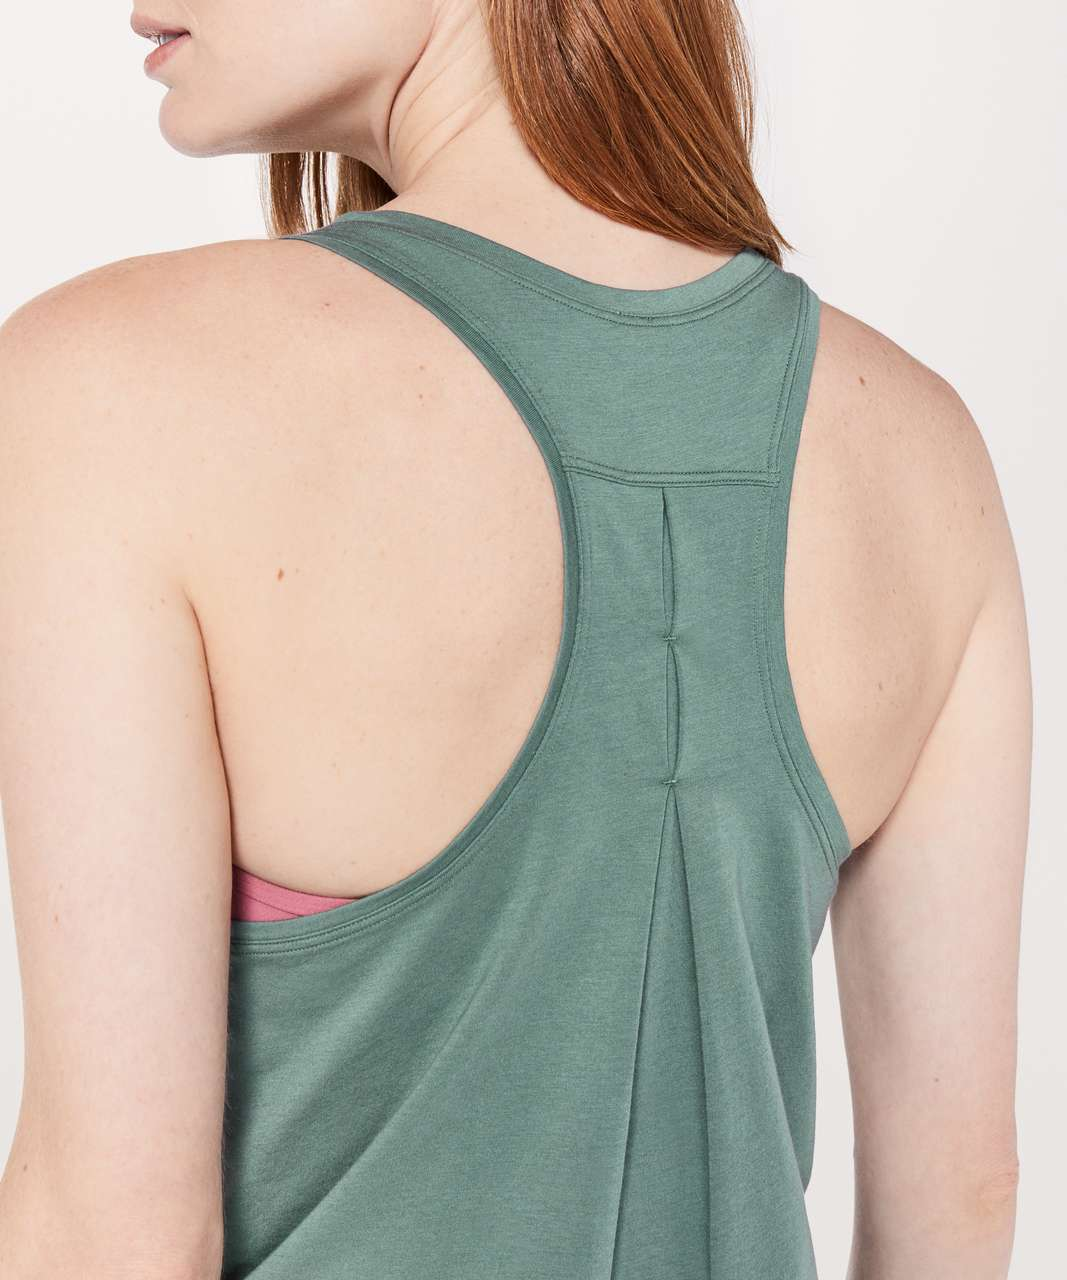 Lululemon Love Tank *Pleated - Juniper